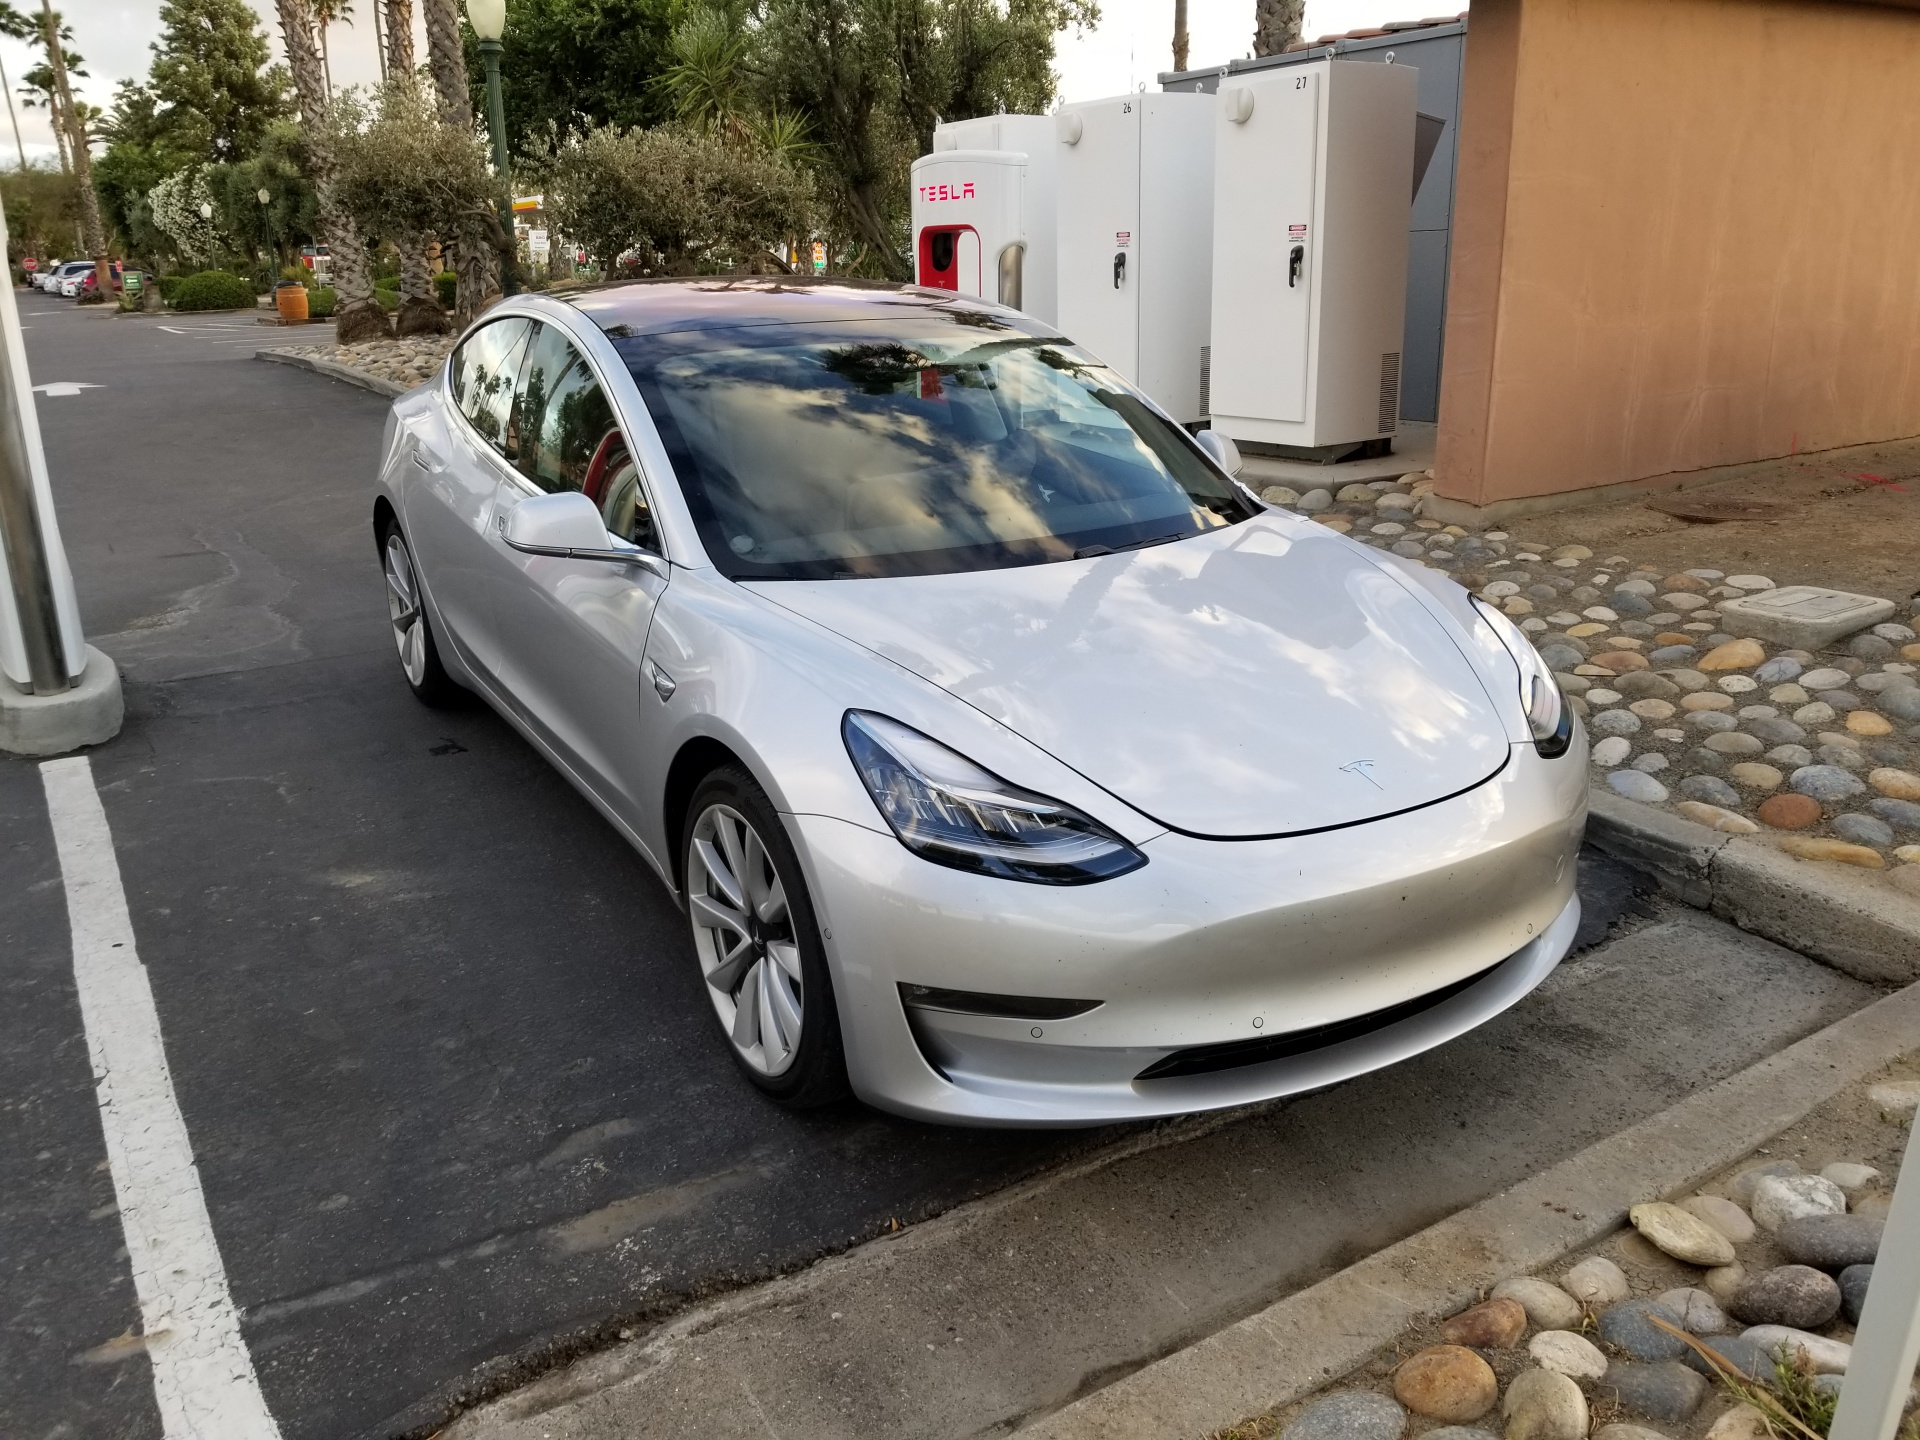 Tesla Model S Burns Fire Supercharger Norway together with Presskit furthermore Like Drive Transmission Less Tesla further Tesla Model 3 Supercharging Harris Ranch Sf La additionally Tesla Model S Weight. on tesla model 3 supercharger